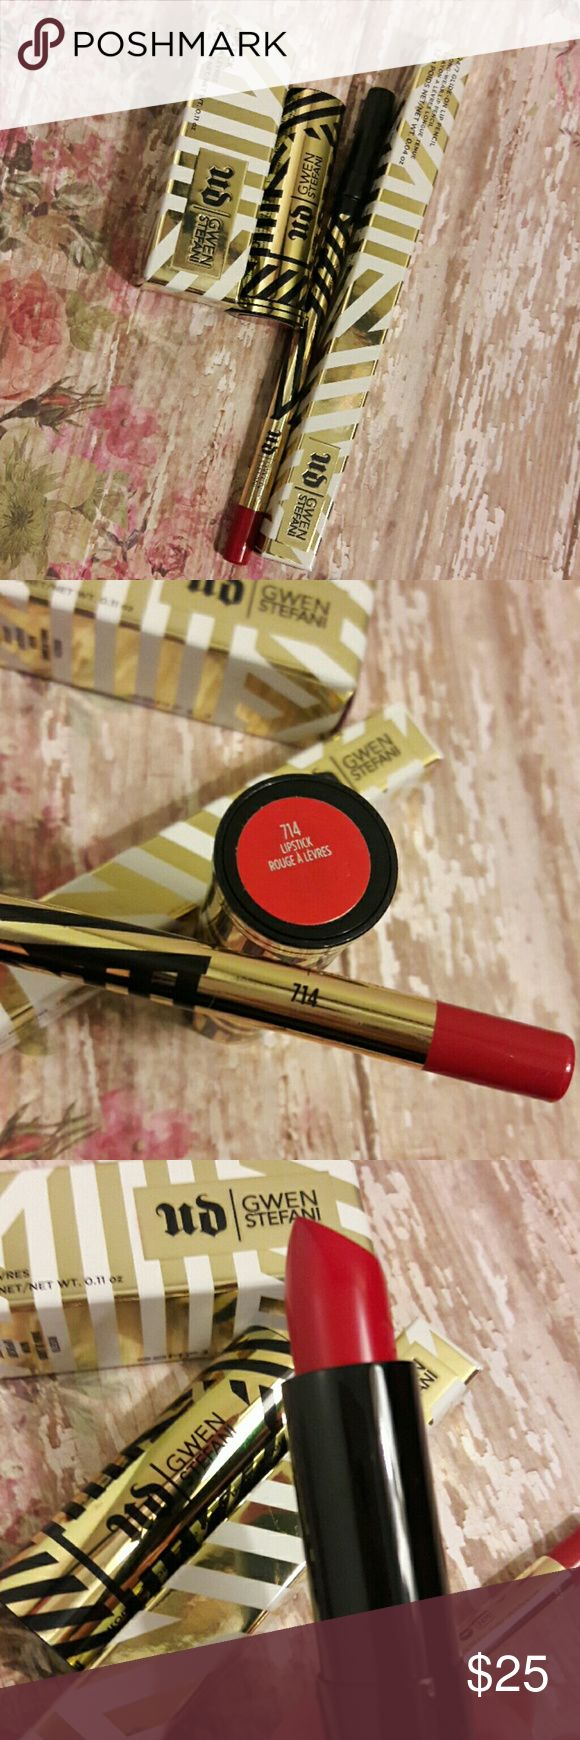 BNIB UD Gwen Stefani Lip Set **AUTHENTIC** Brand new never used. Still have original boxes they came in. Limited Edition, no longer sold. In the Shade 714. Listing includes the lipstick and lip pencil. Reasonable offers accepted. No trades. Urban Decay Makeup Lipstick